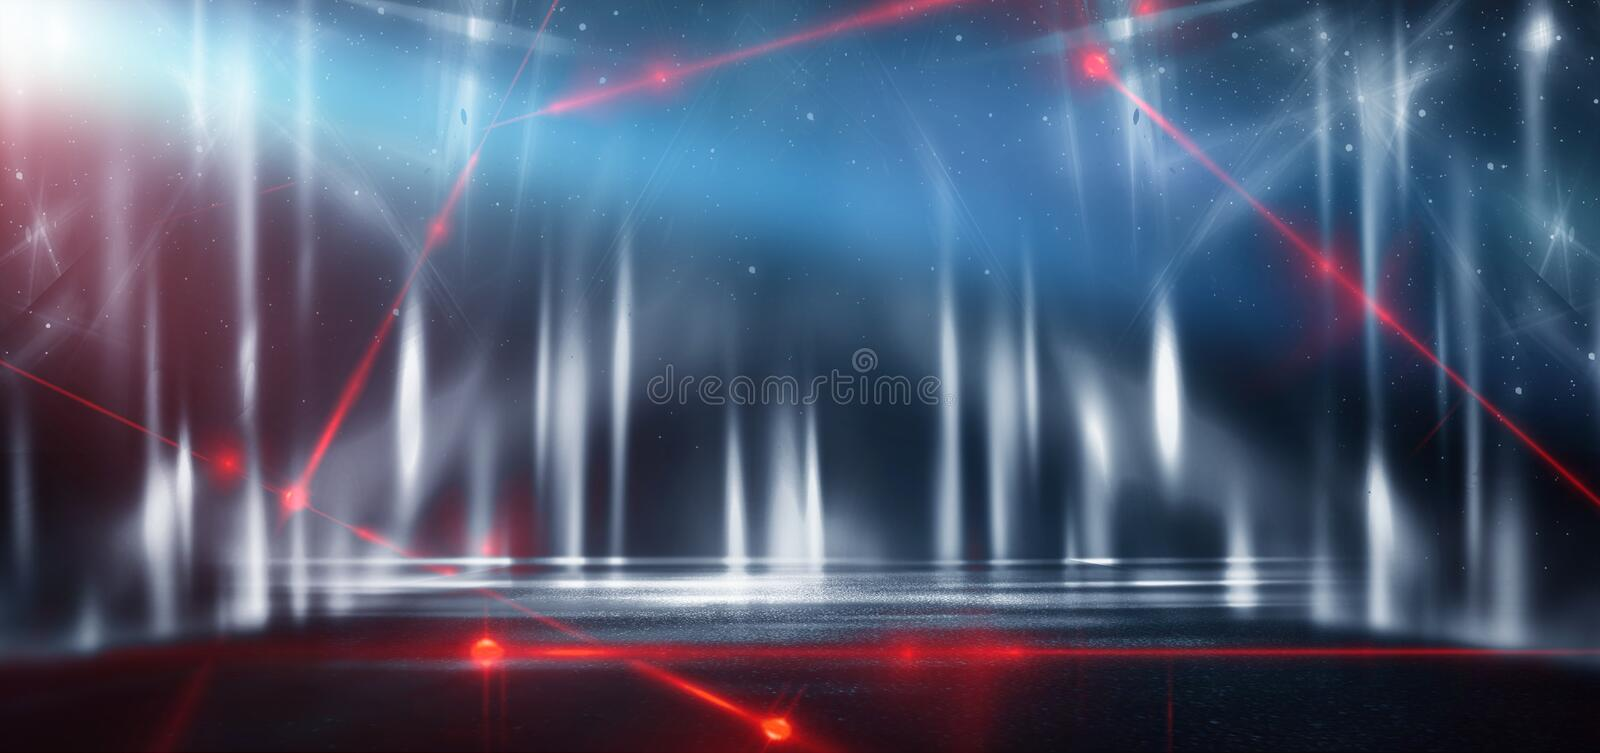 Abstract blue background with neon light, tunnel, corridor, red laser rays, smoke. Light arch. Abstraction of blue with neon, rays, lines stock photography